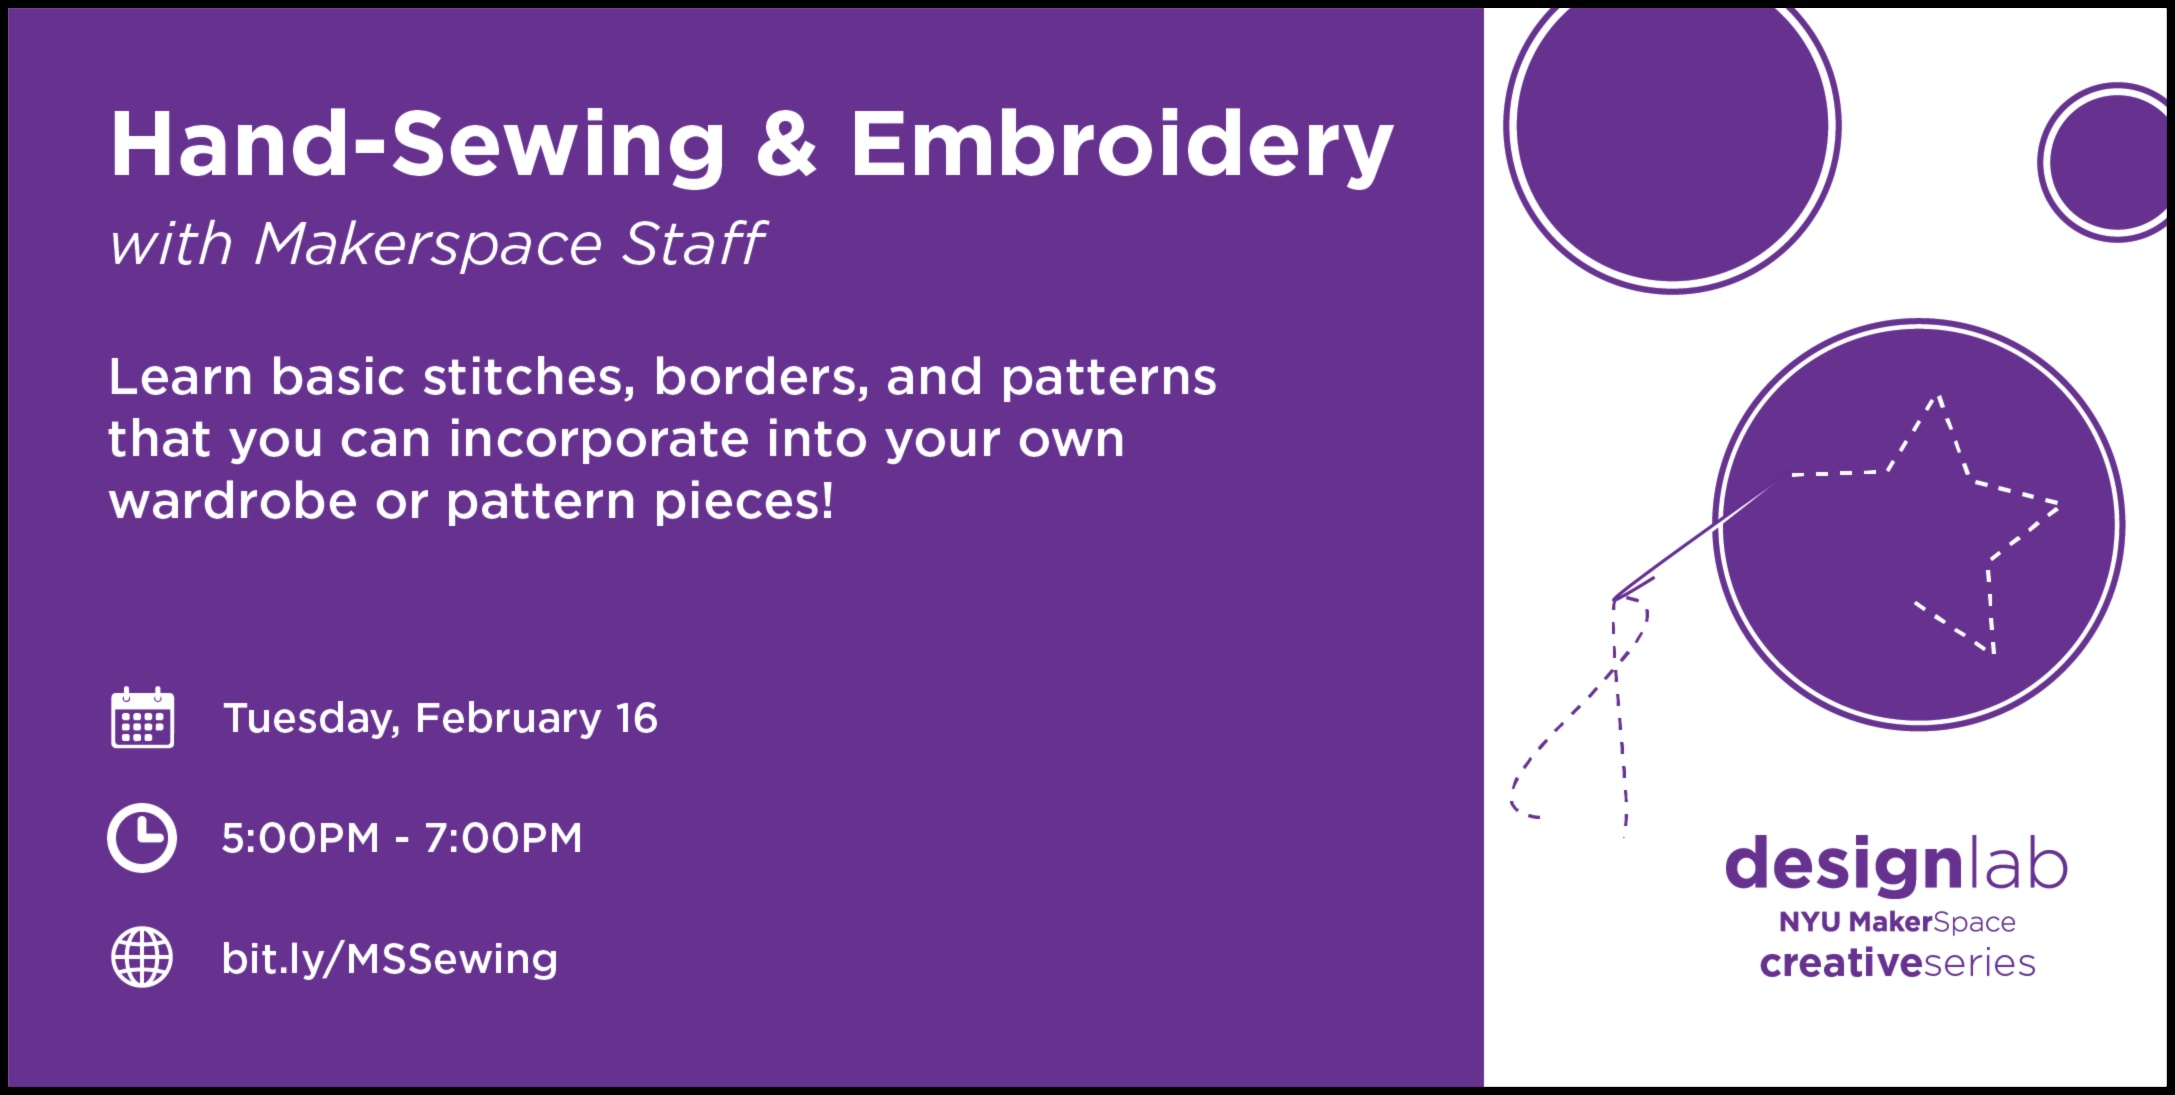 Hand-sewing & Embroidery - flyer